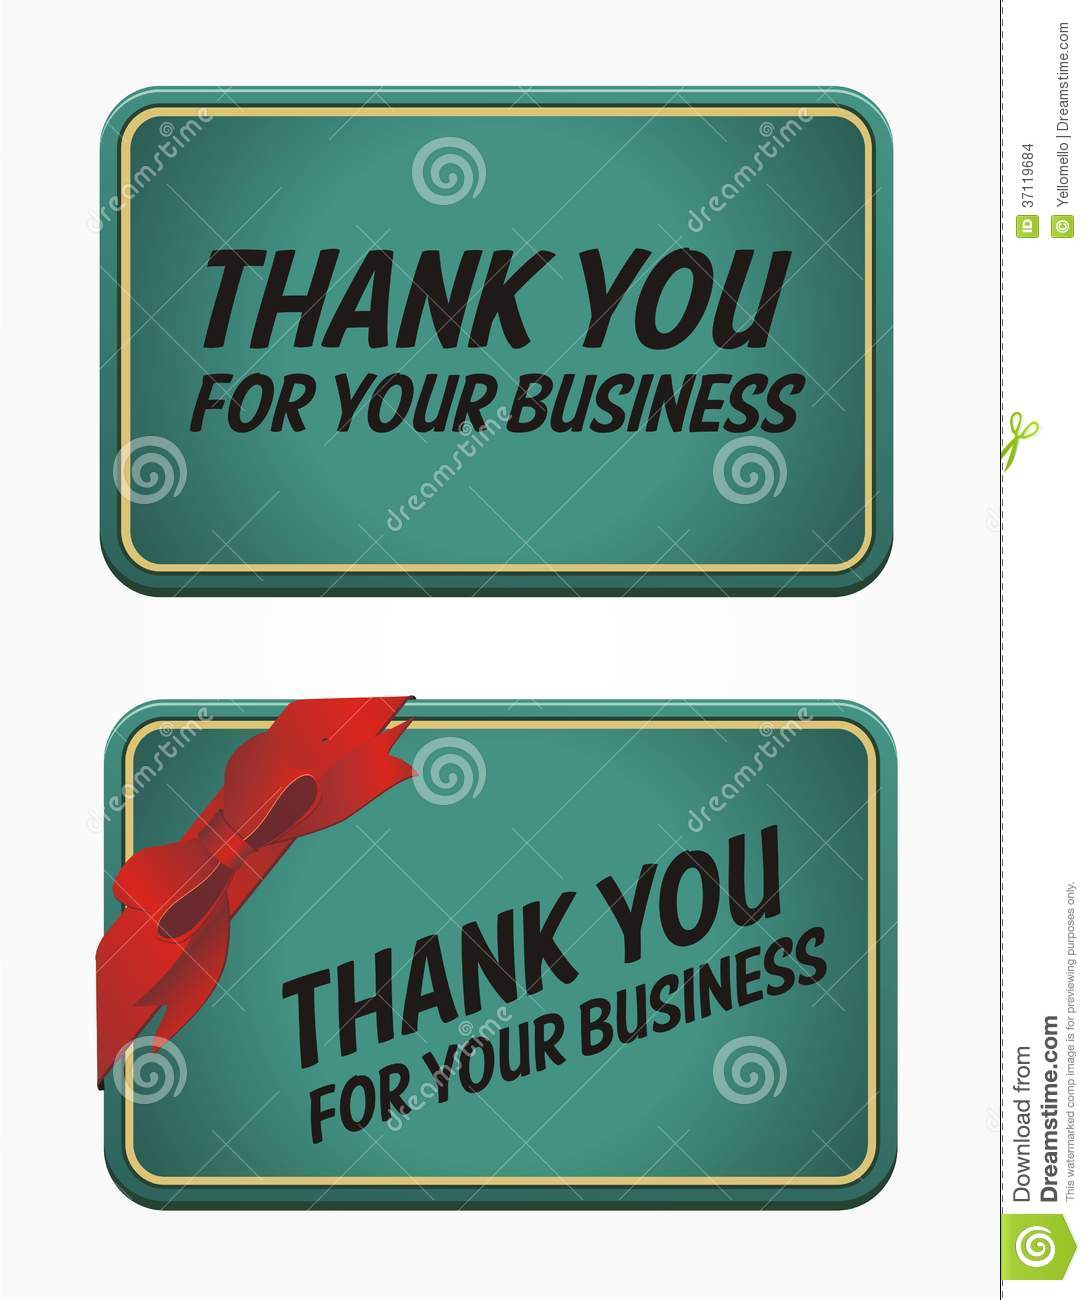 thank you for your business card stock images  image: 37119684